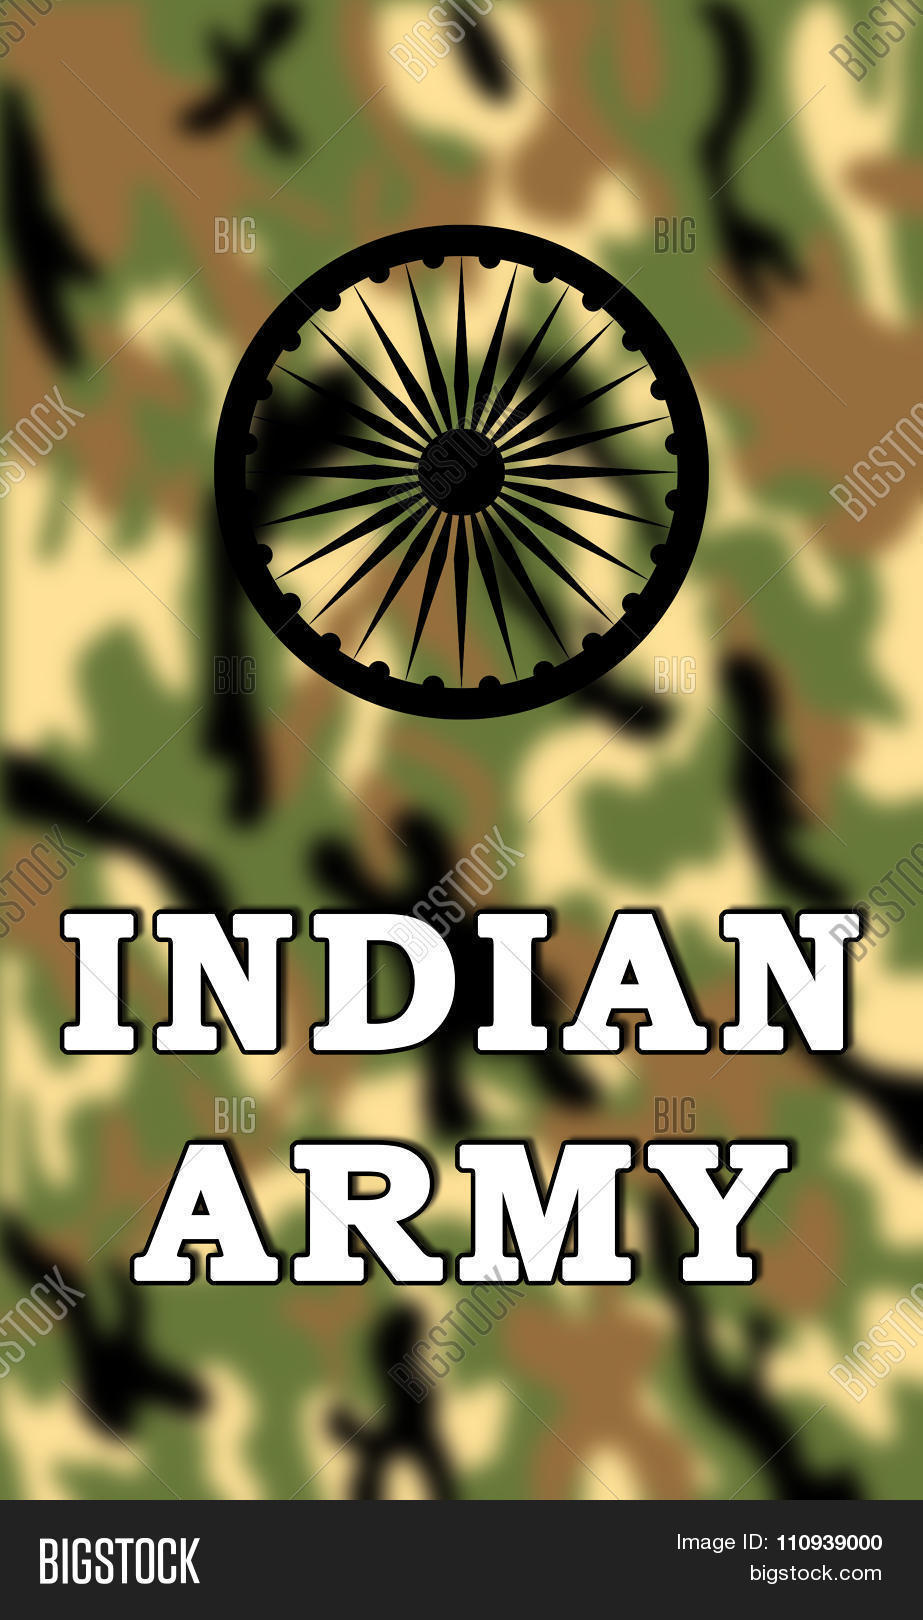 Indian Armymilitary Image Photo Free Trial Bigstock